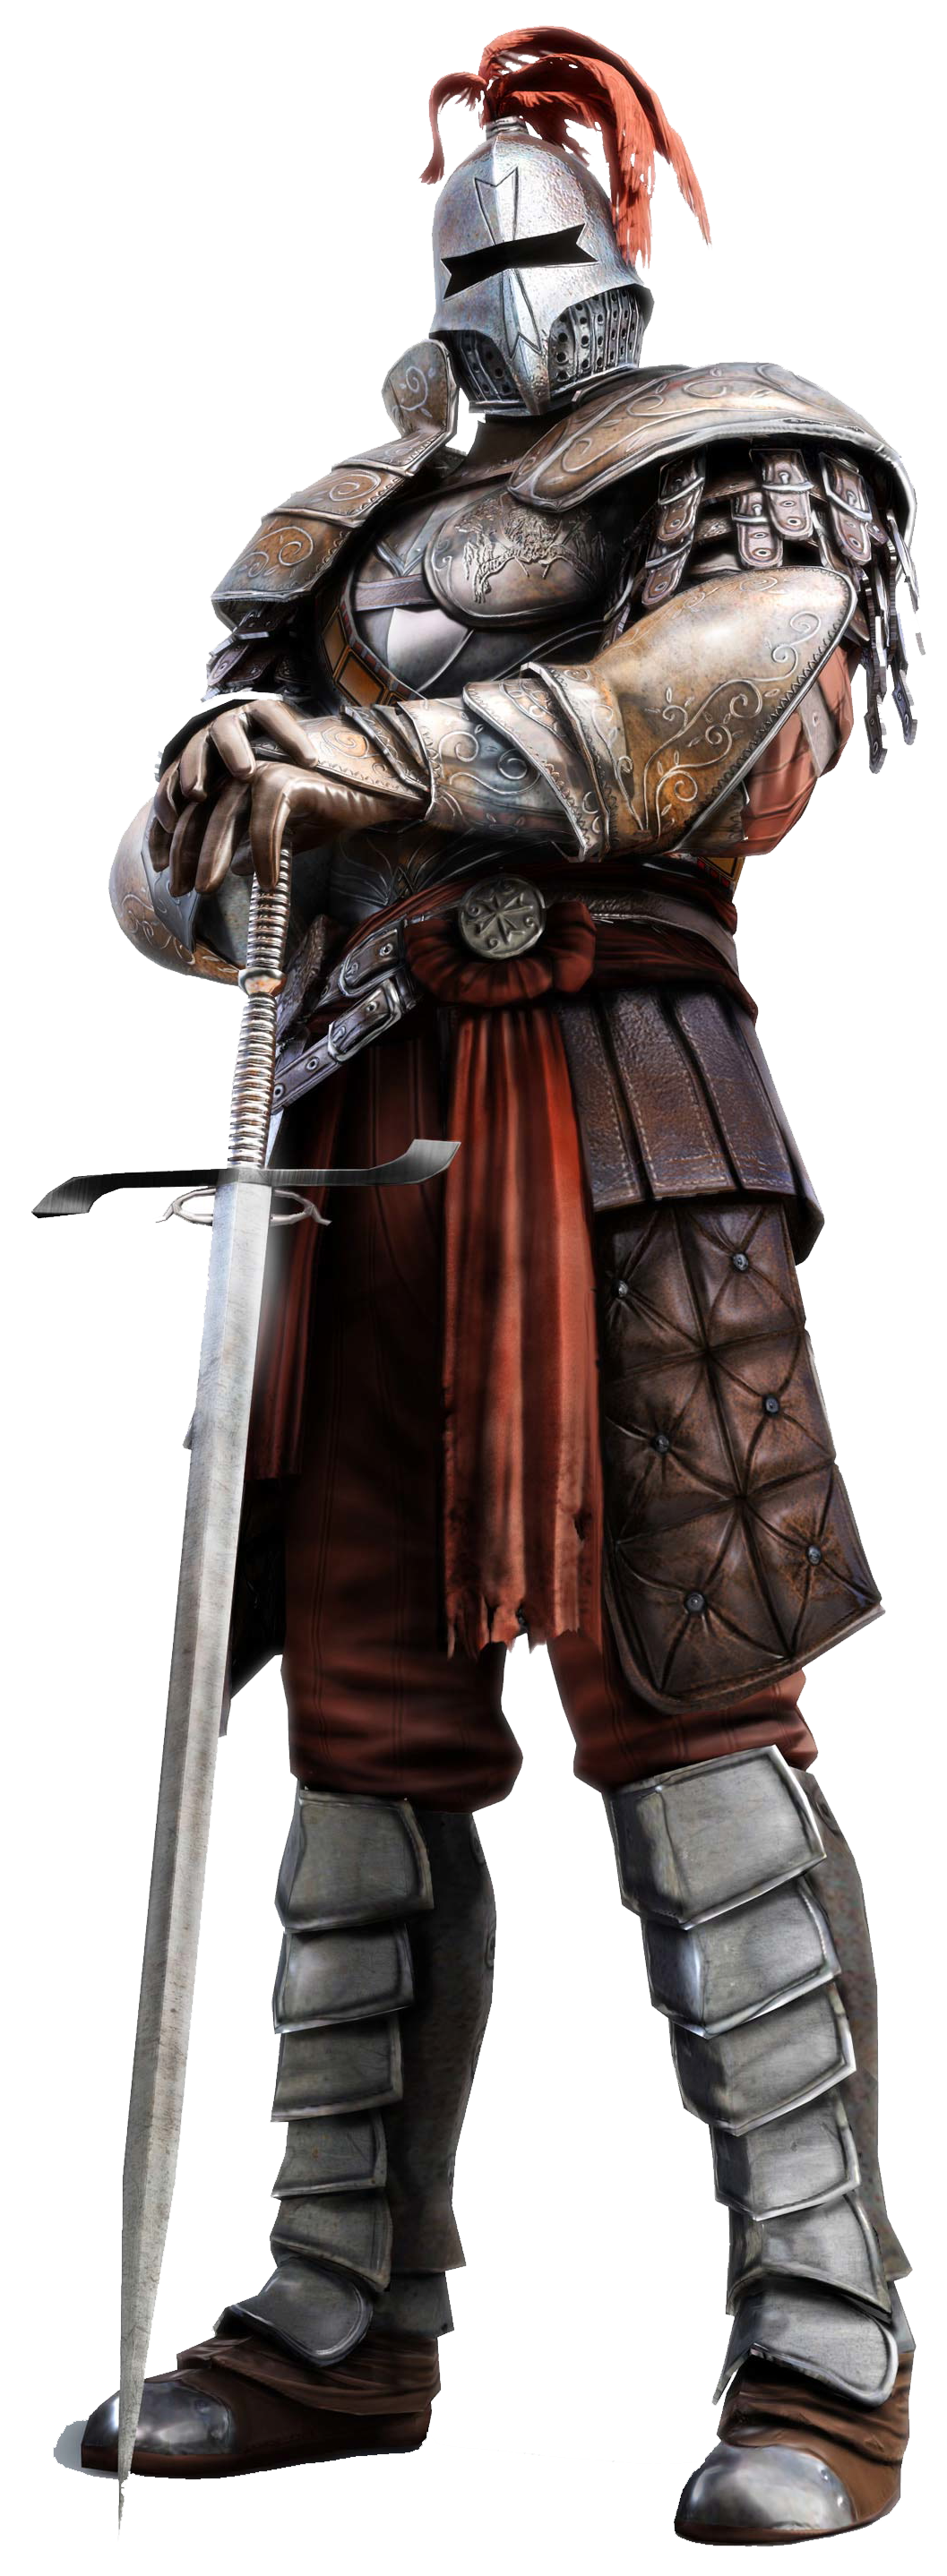 Knight png transparent images. Knights clipart chivalry